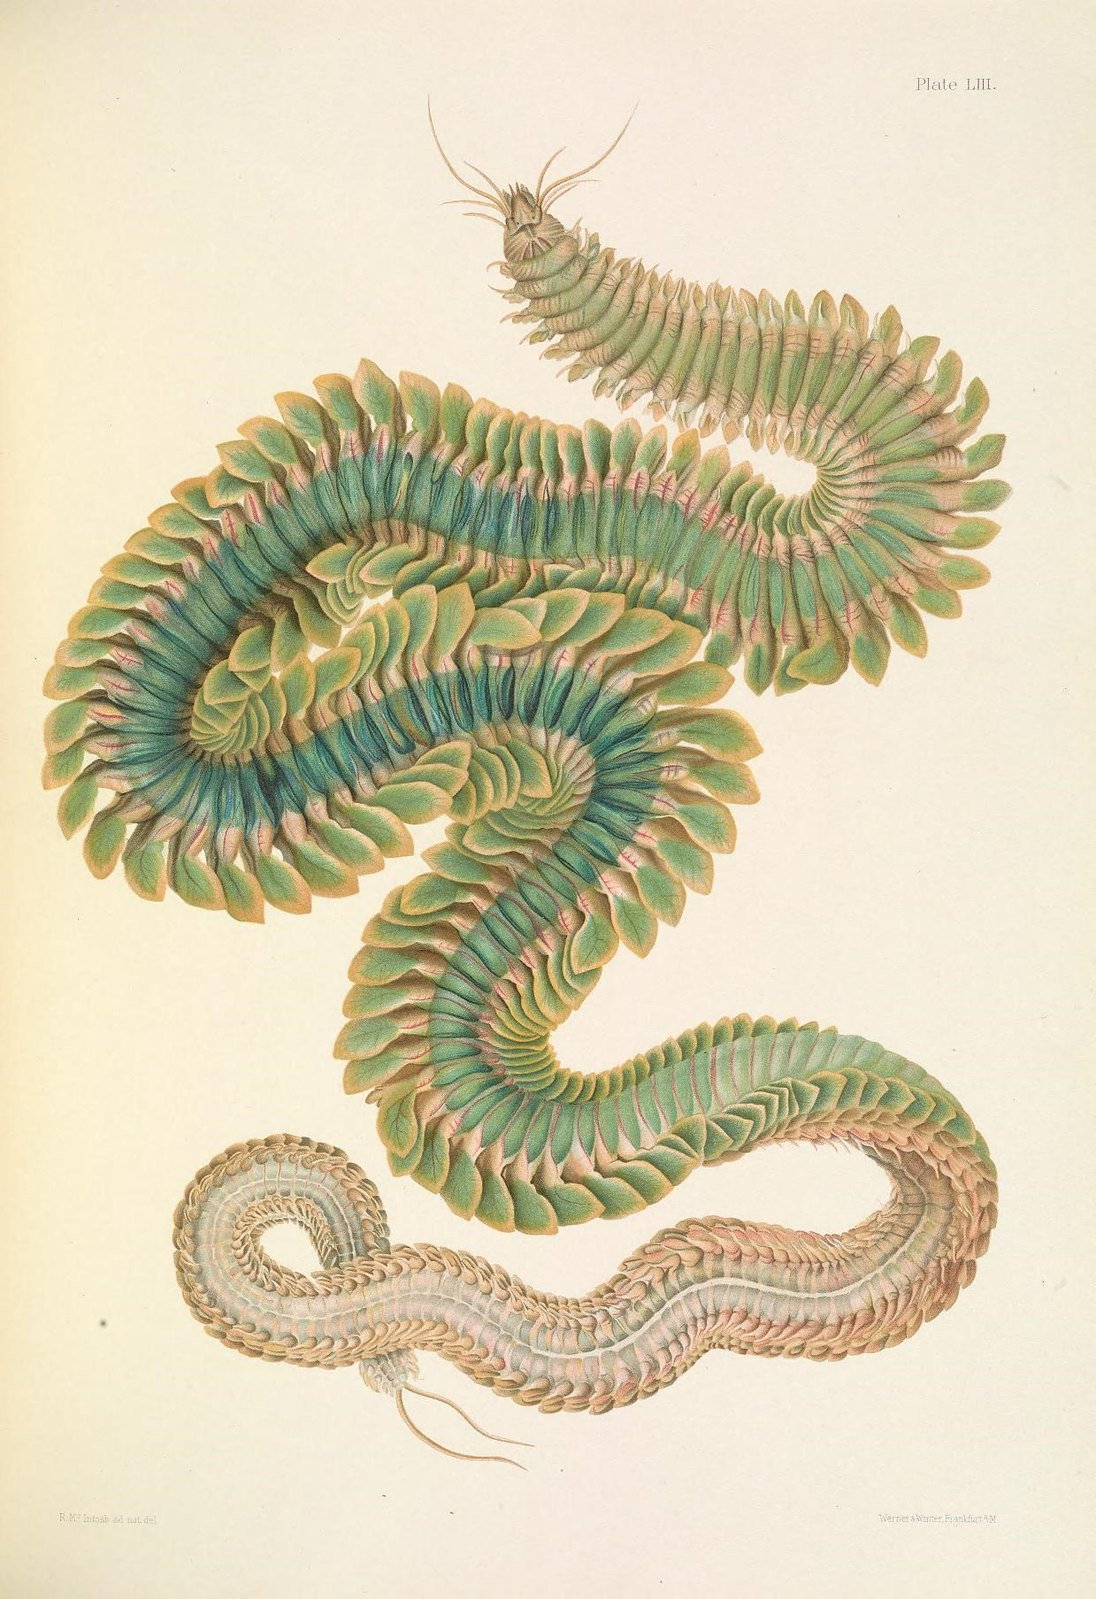 Illustration of a green annelid worm.